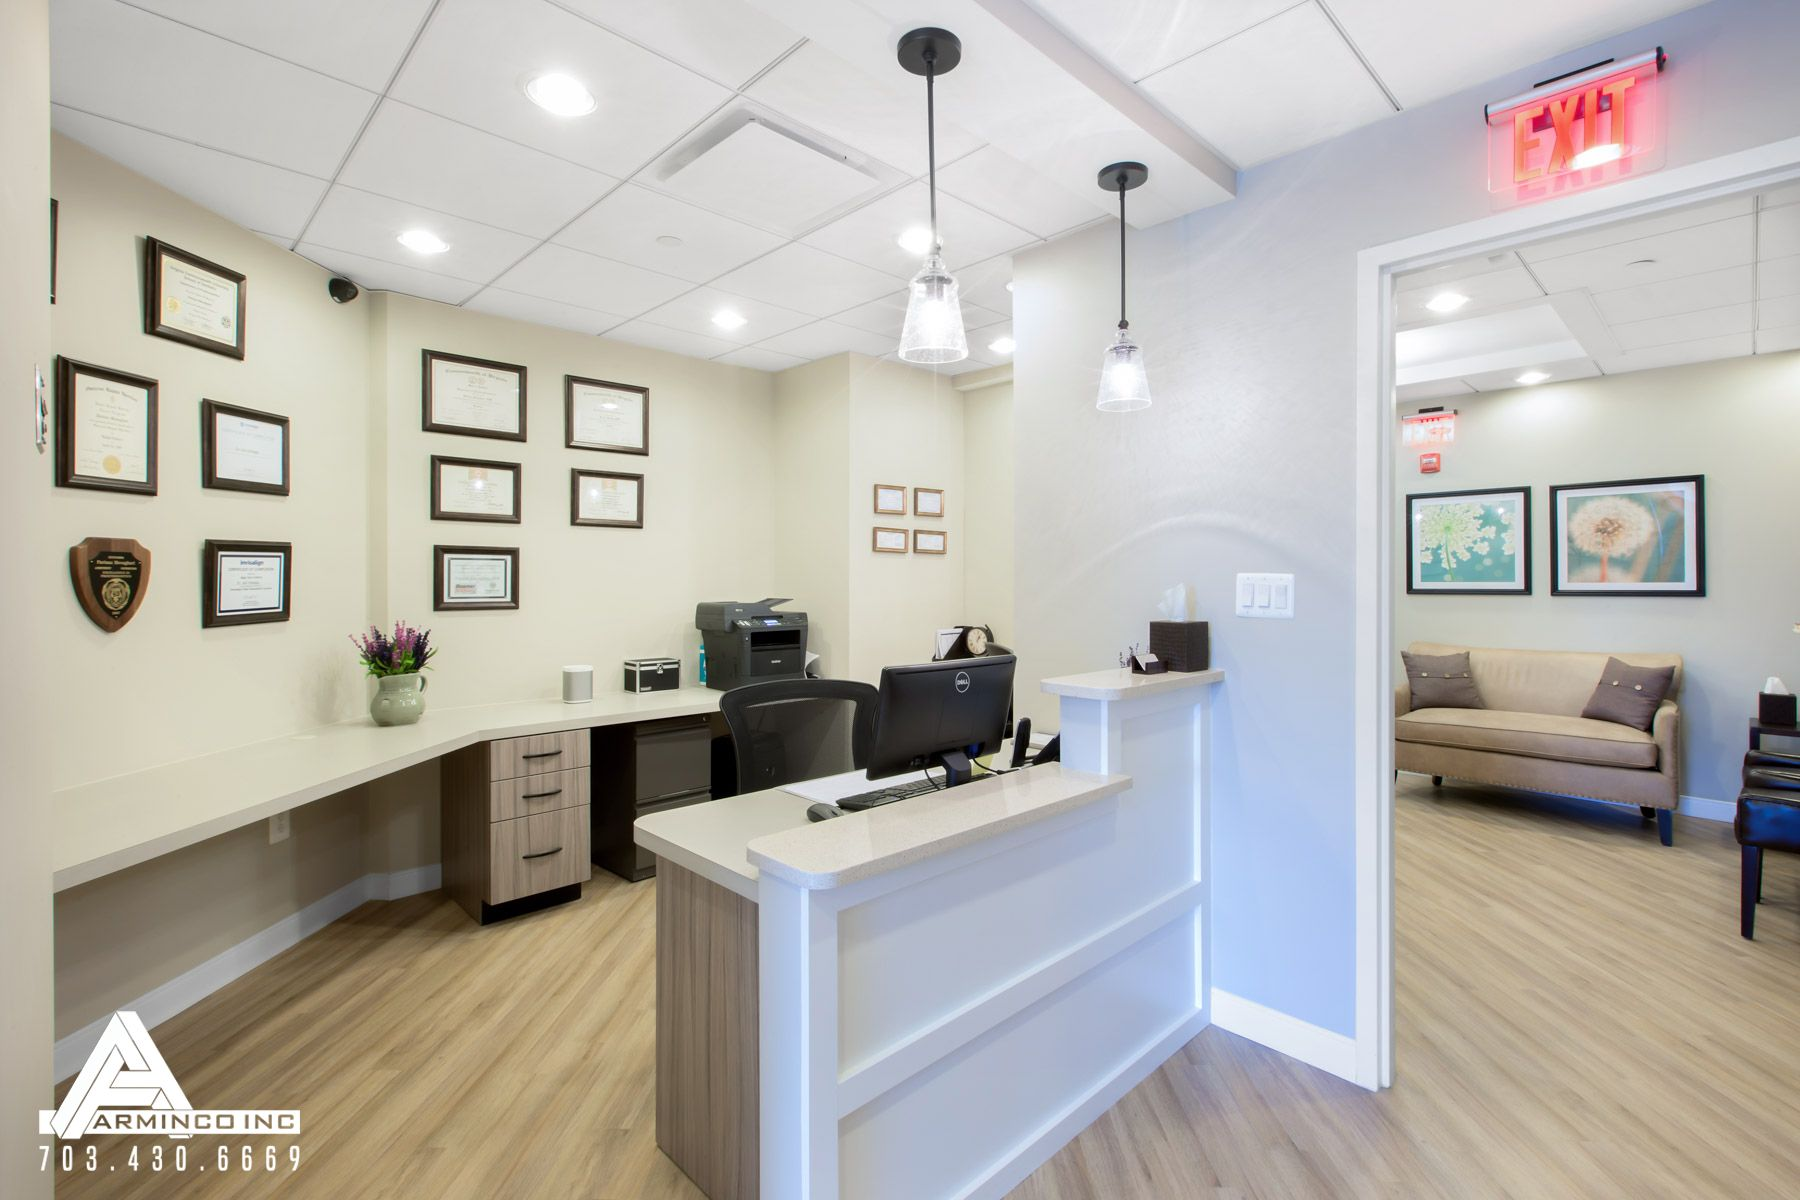 dentist office design. Simple And Bright Patient Check-out Area. Dental Office Design By Arminco Inc. Dentist